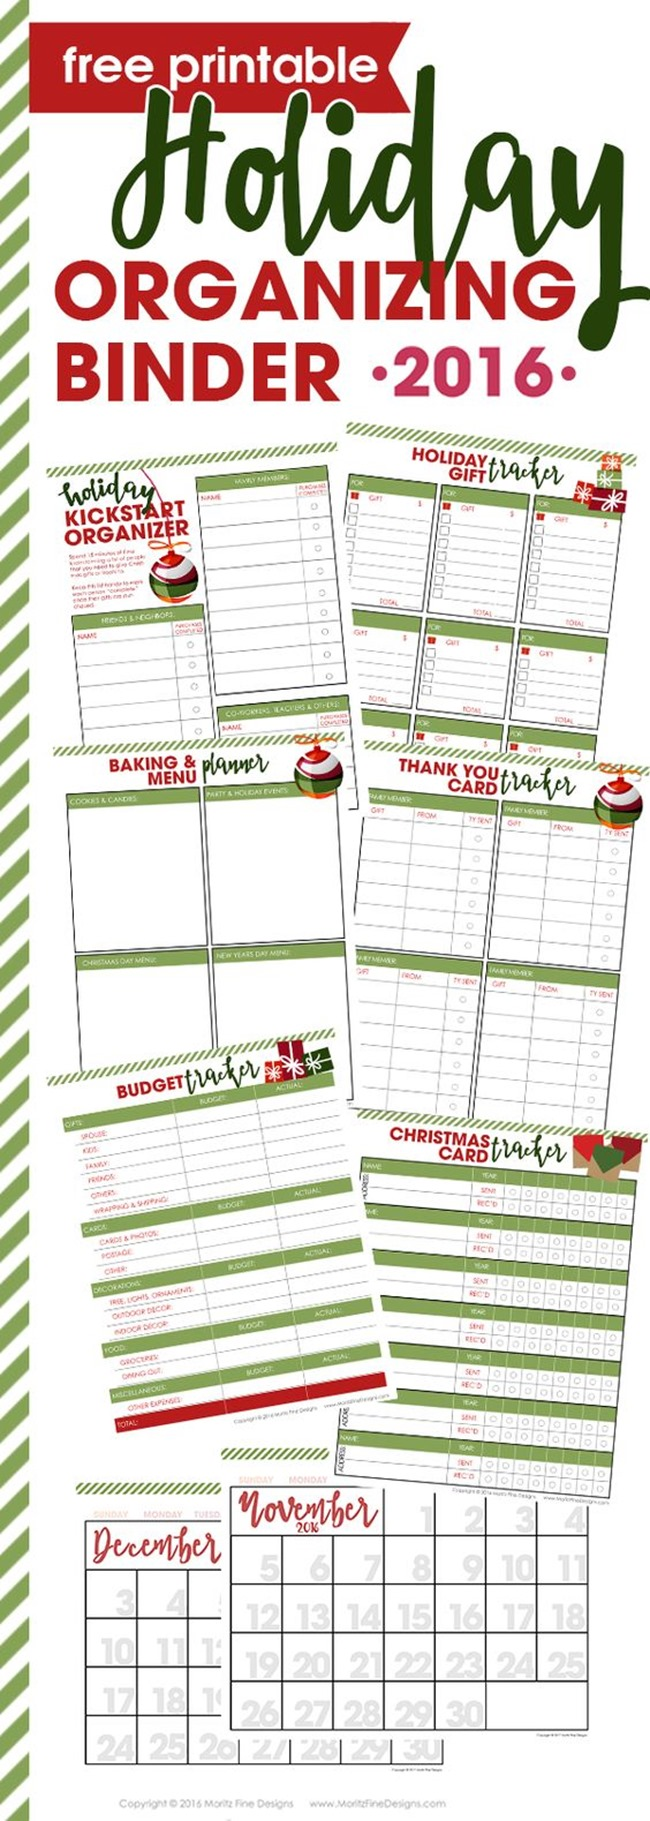 Free Christmas Planner Printable - Organization Binder